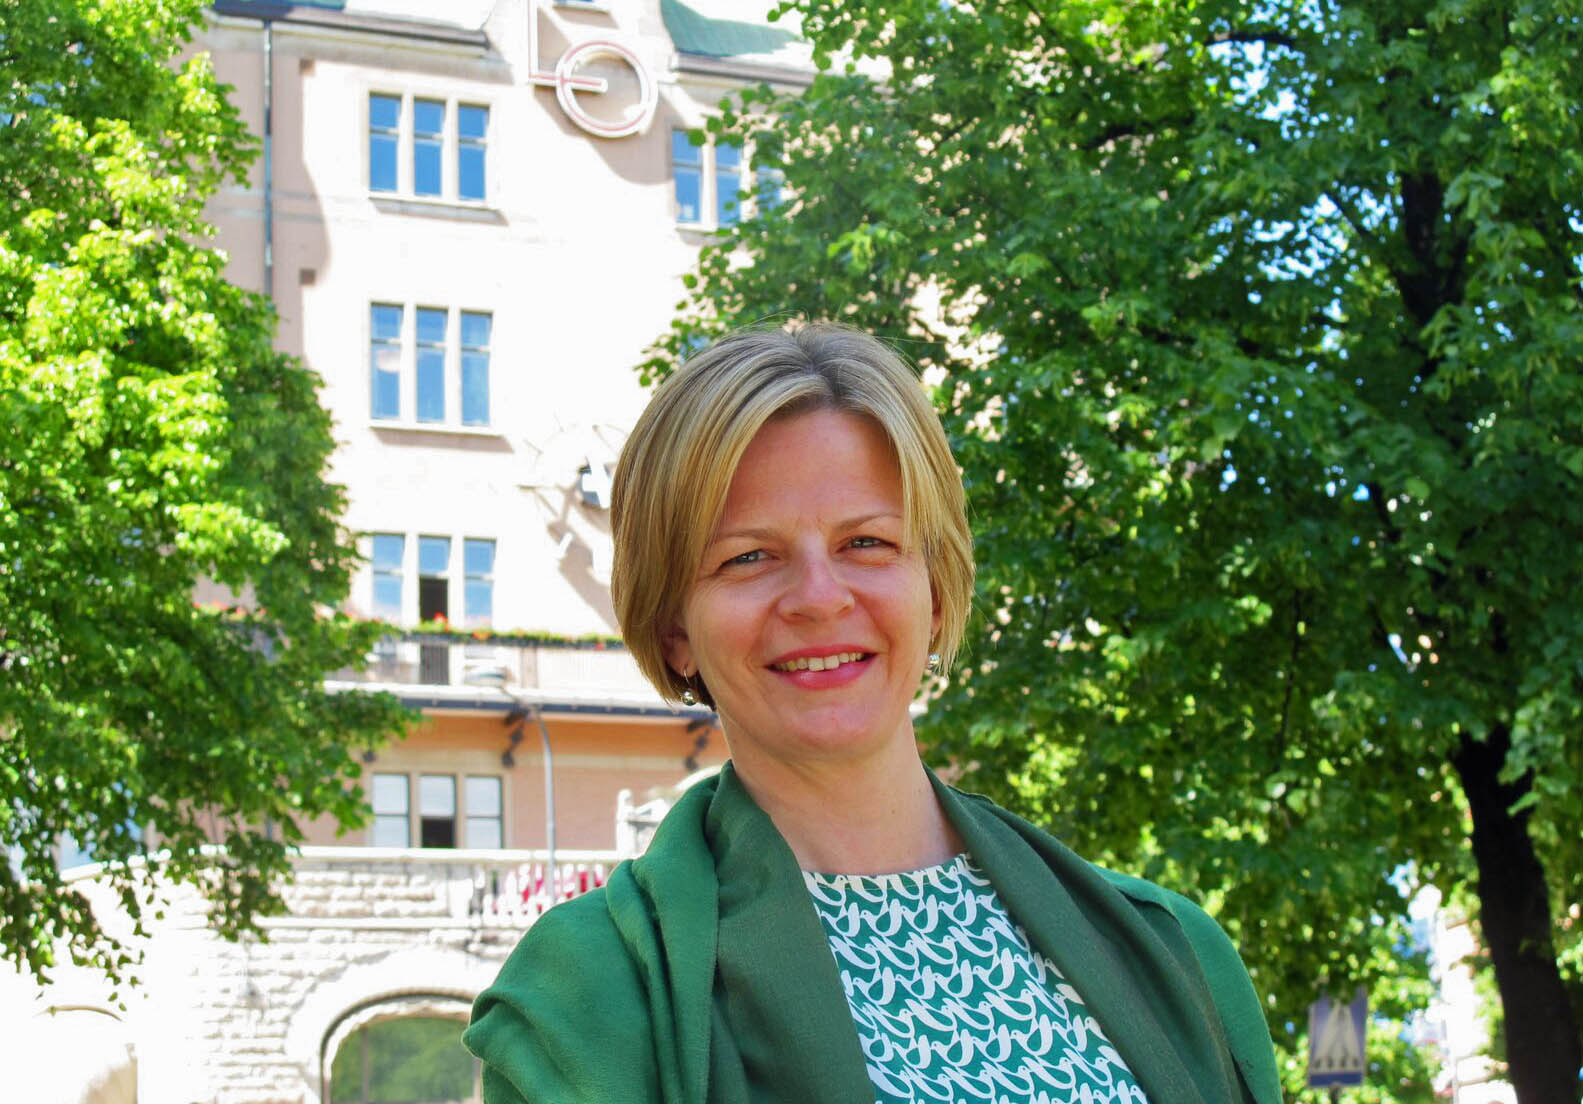 Loa Brynjulfsdottir: The Nordic region is my home country